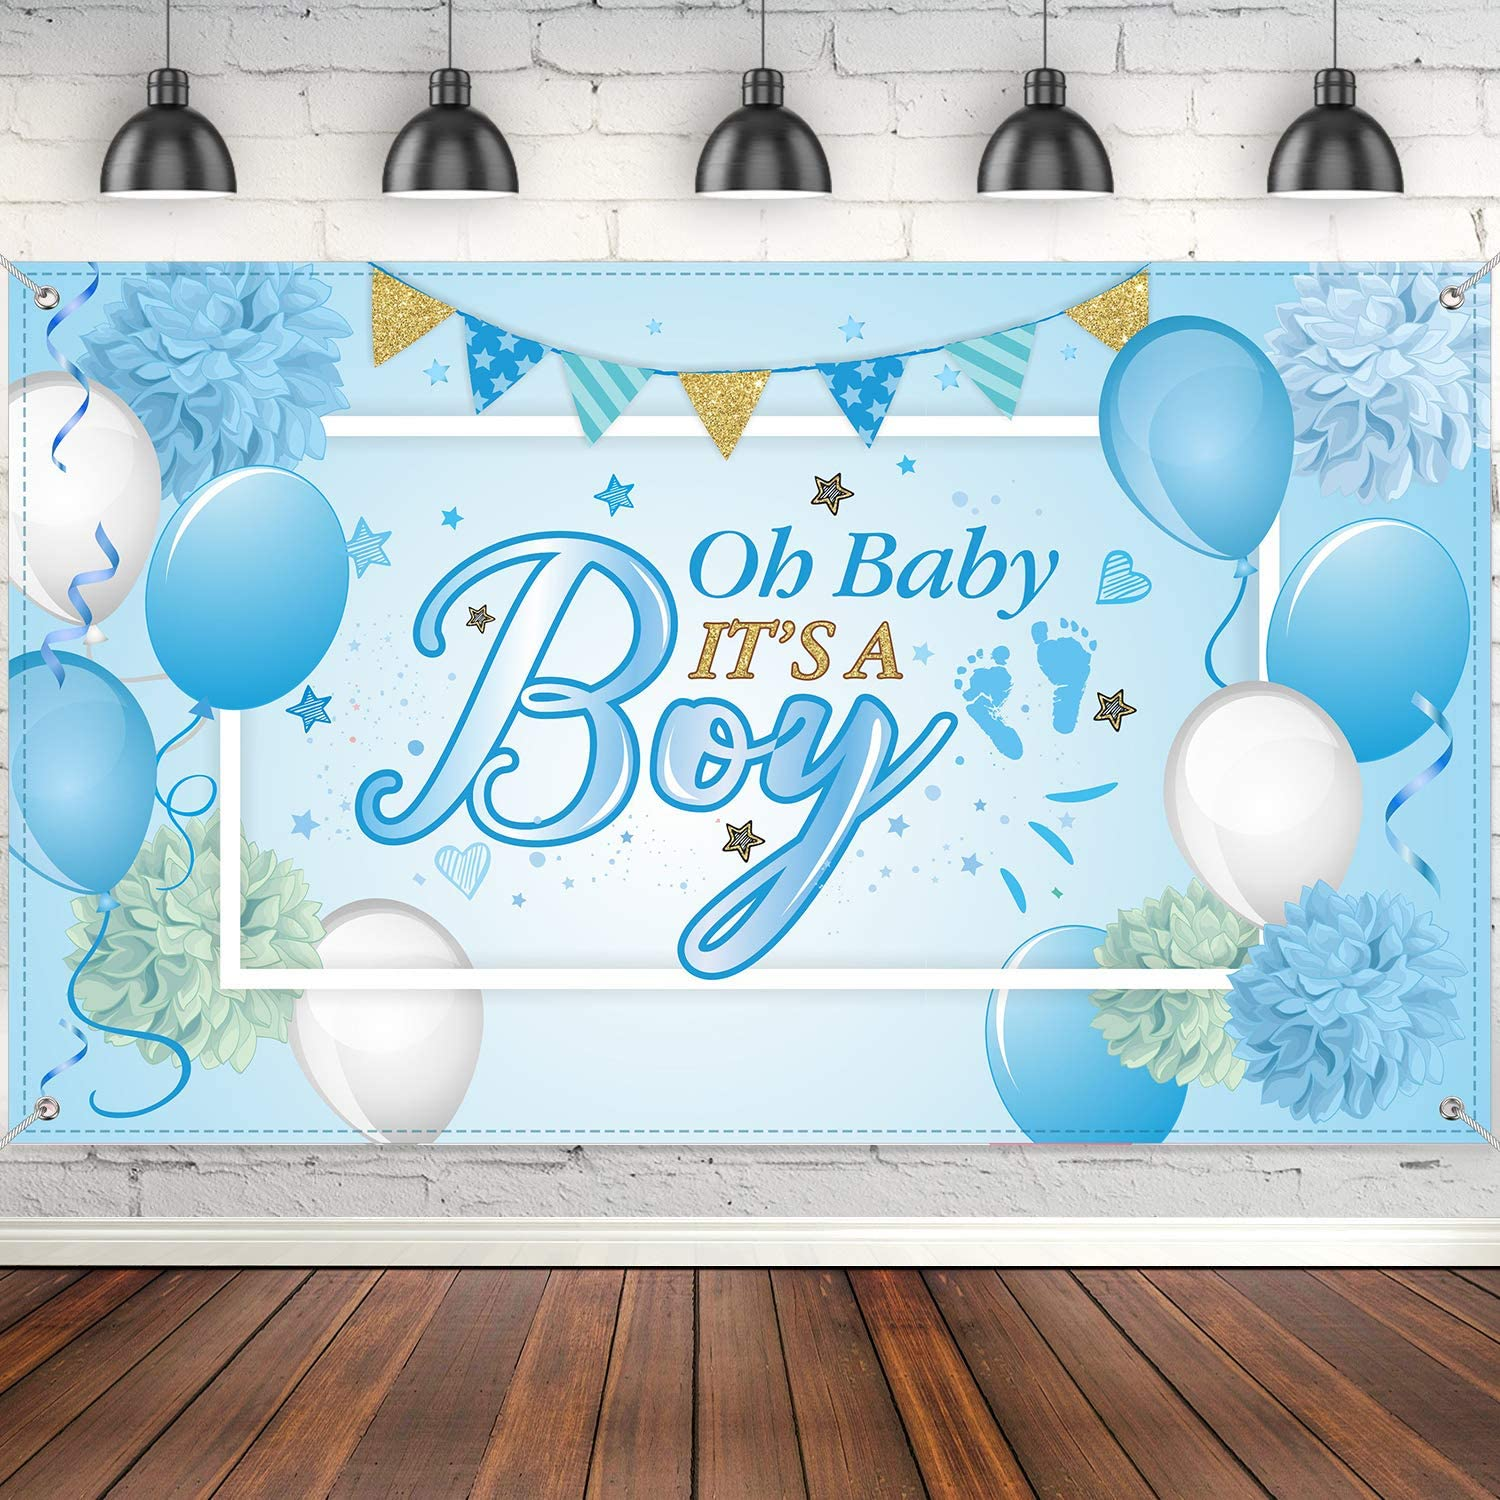 Amazon.com: Blulu Baby Shower Party Backdrop Decorations, Large Durable  Fabric Made Baby Shower Banner Backdrop Photo Booth Background for Boy's or  Girl's Baby Shower Party Supplies (Boy Style): Toys & Games